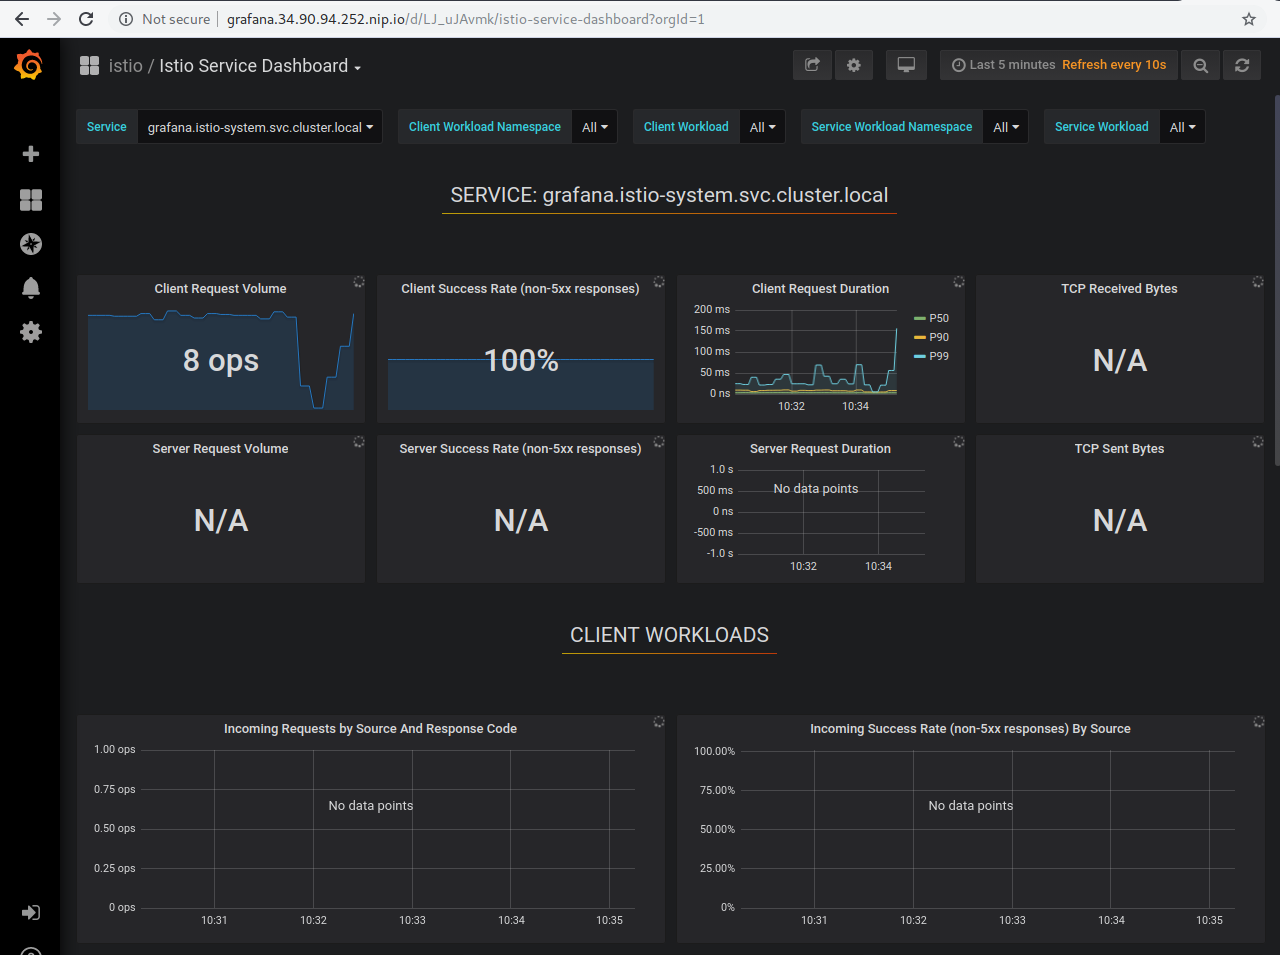 Grafana dashboard for the Store application